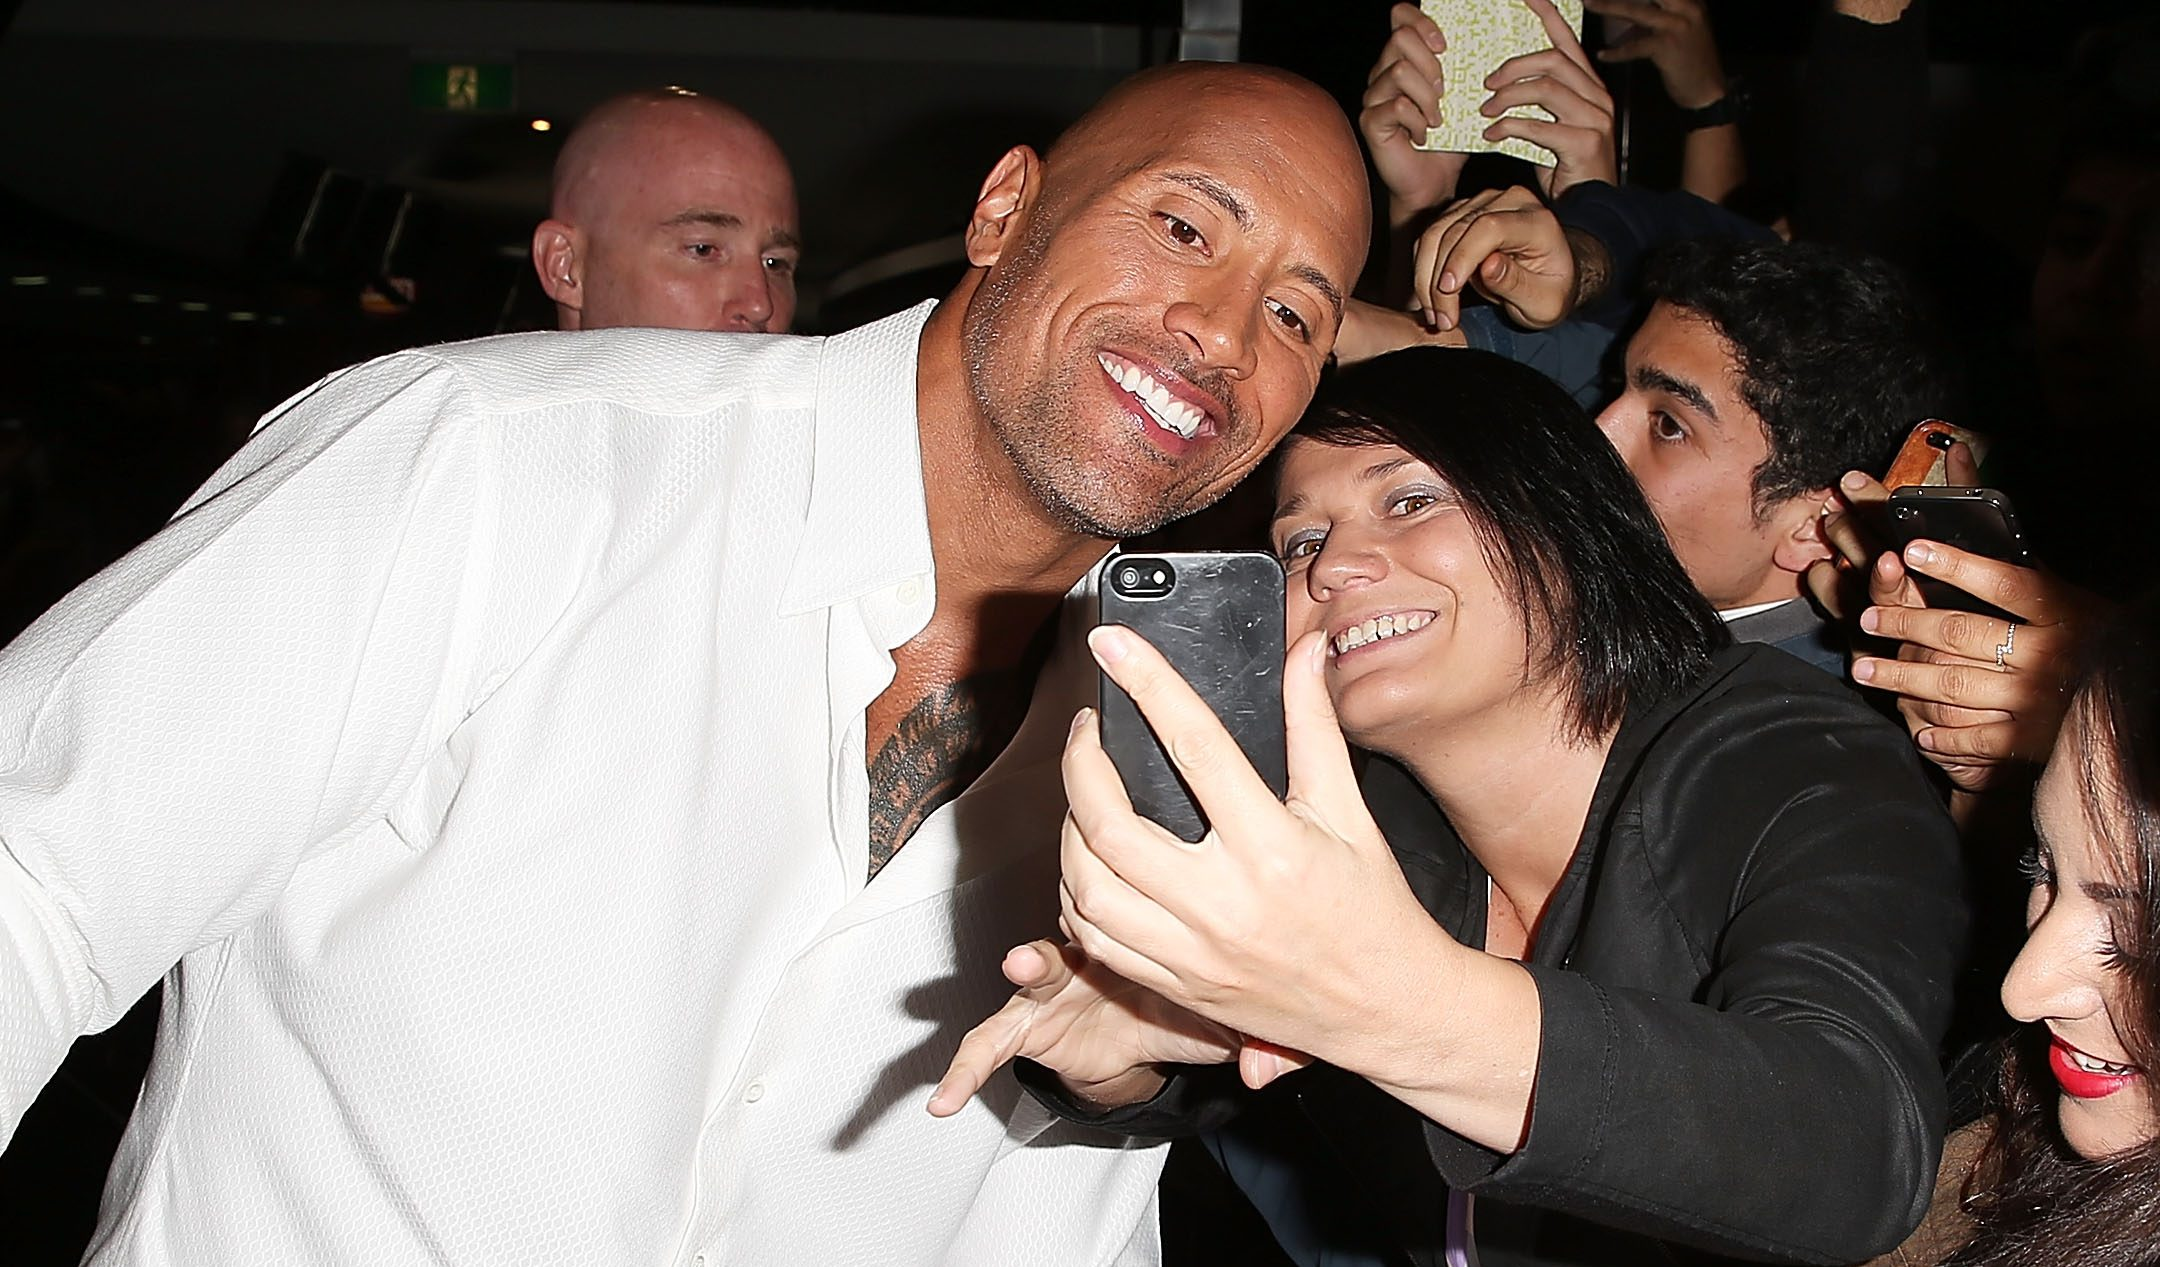 The Rock Sent This Teen a Heartfelt Message After His Mom & Sister Died